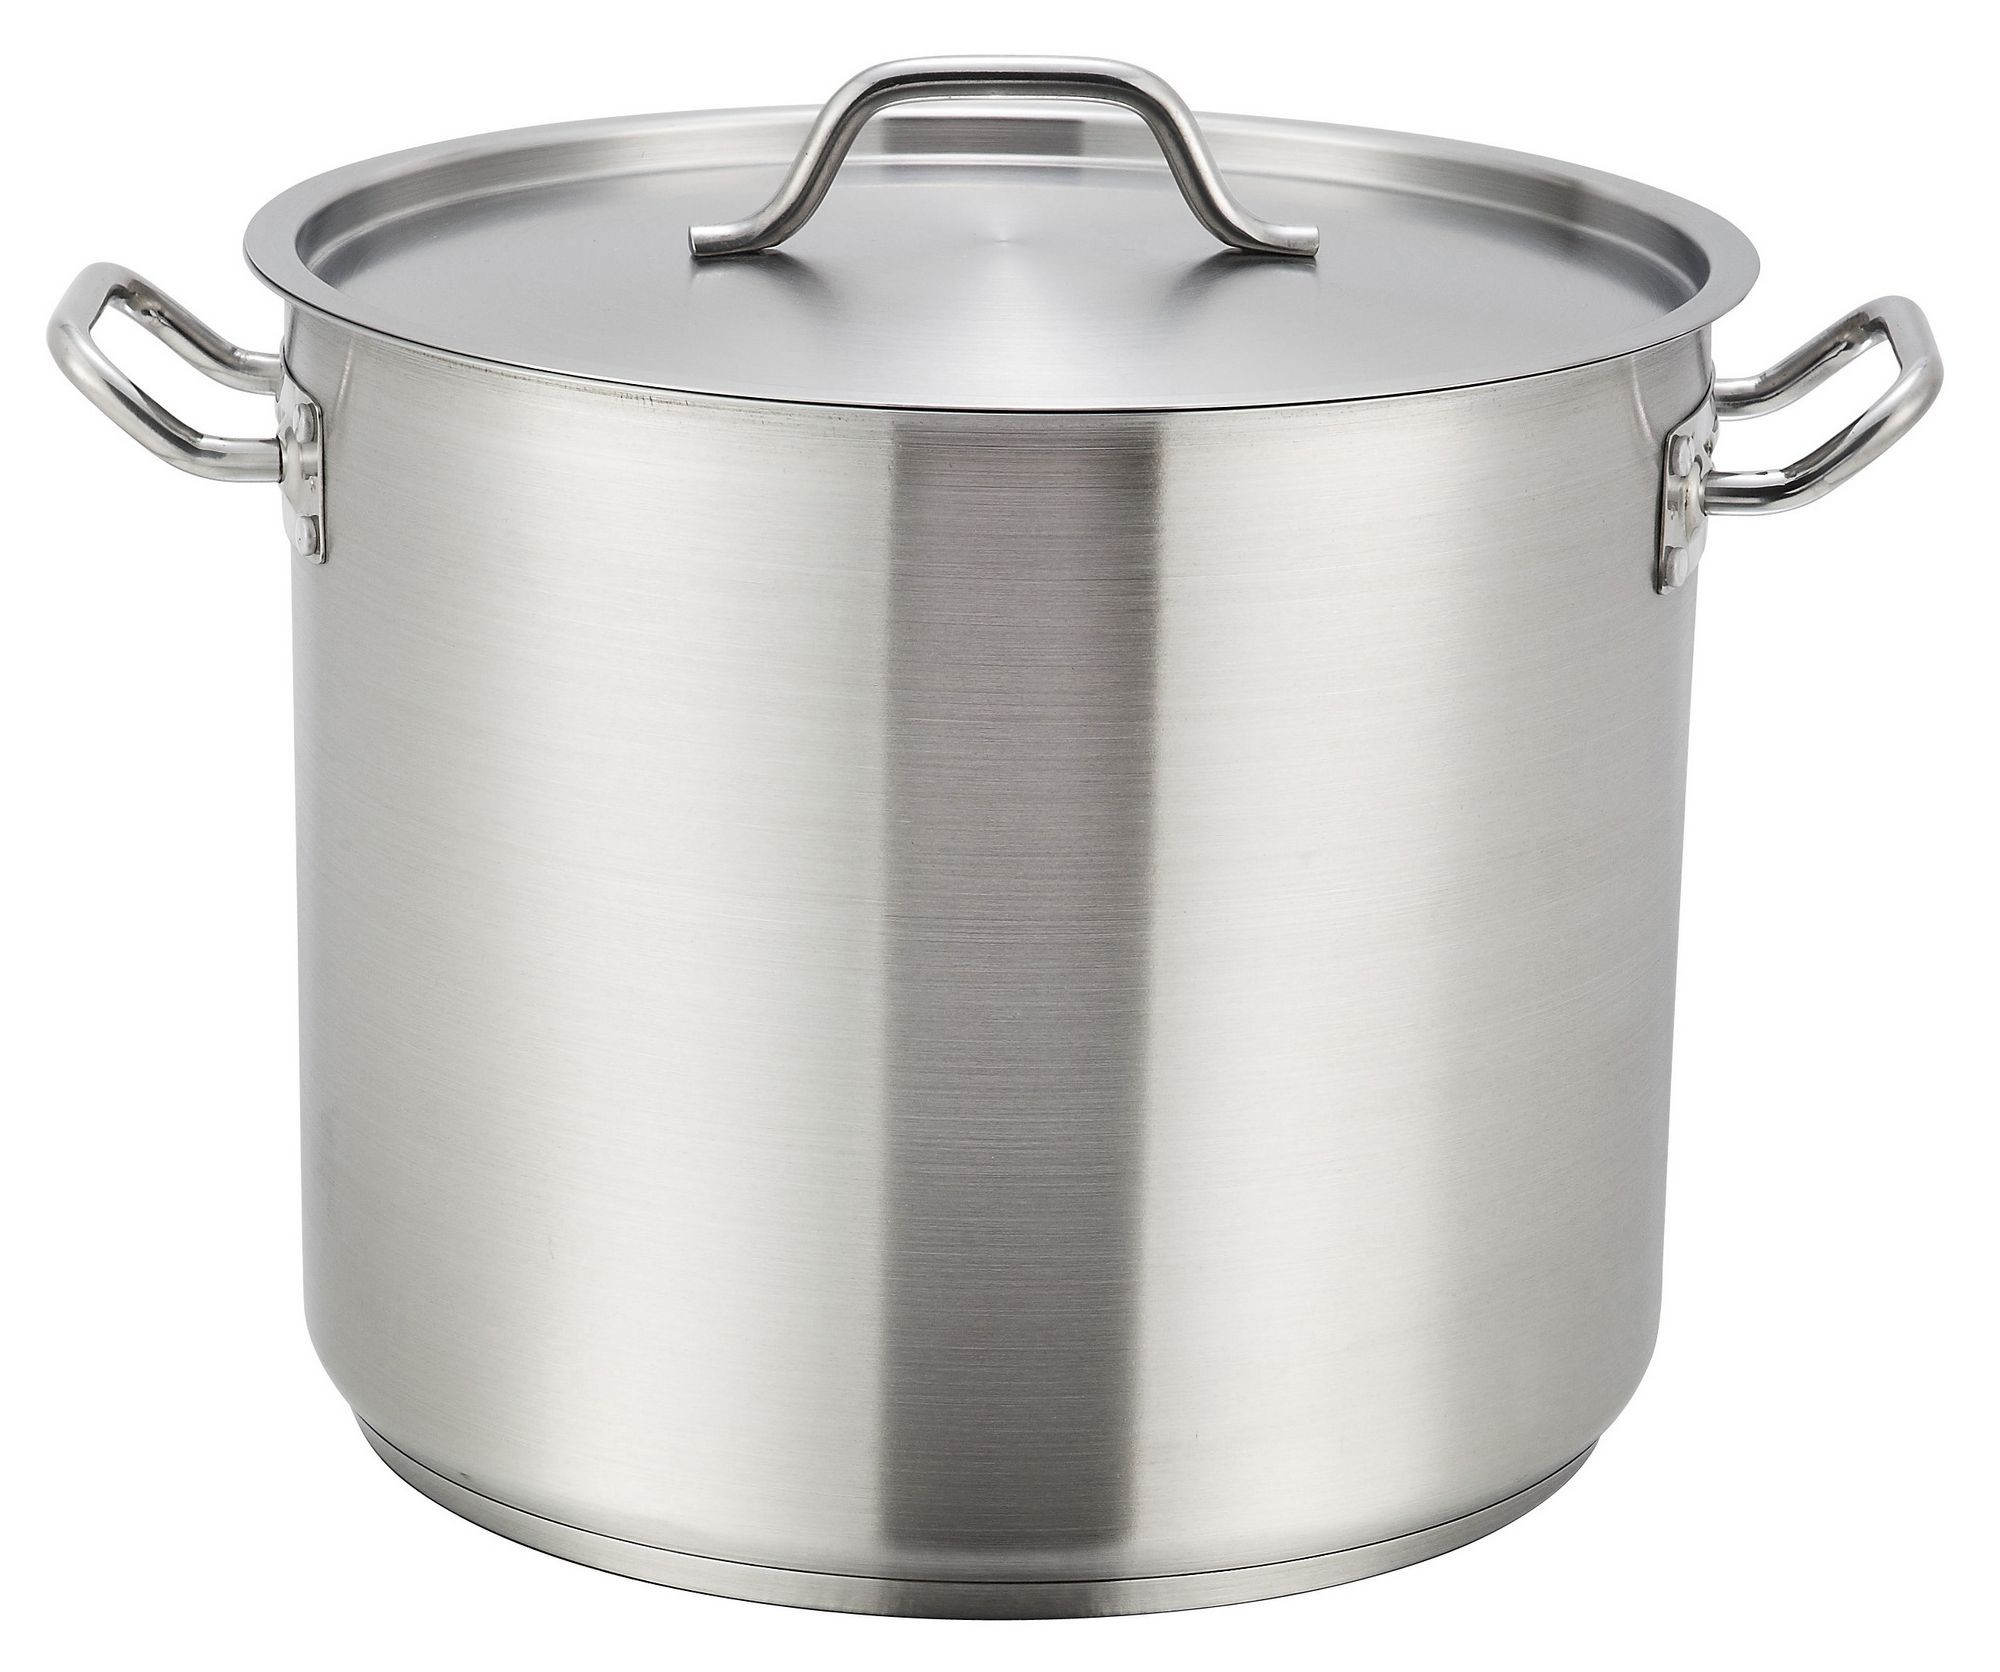 Stainless Steel 40-Qt Stock Pot